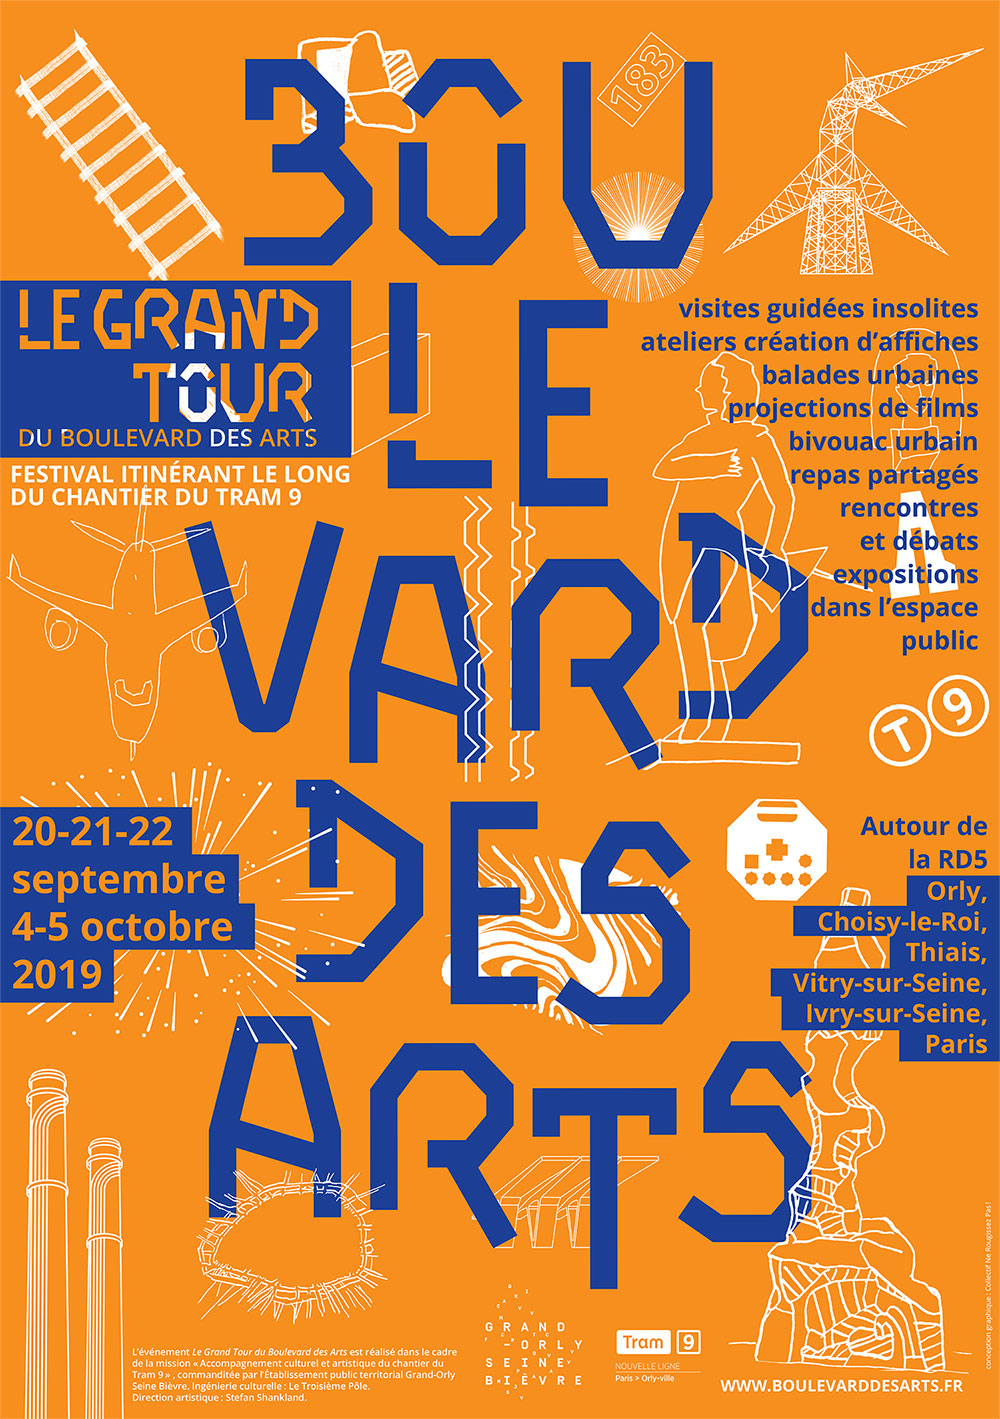 Le Grand Tour du Boulevard des Arts